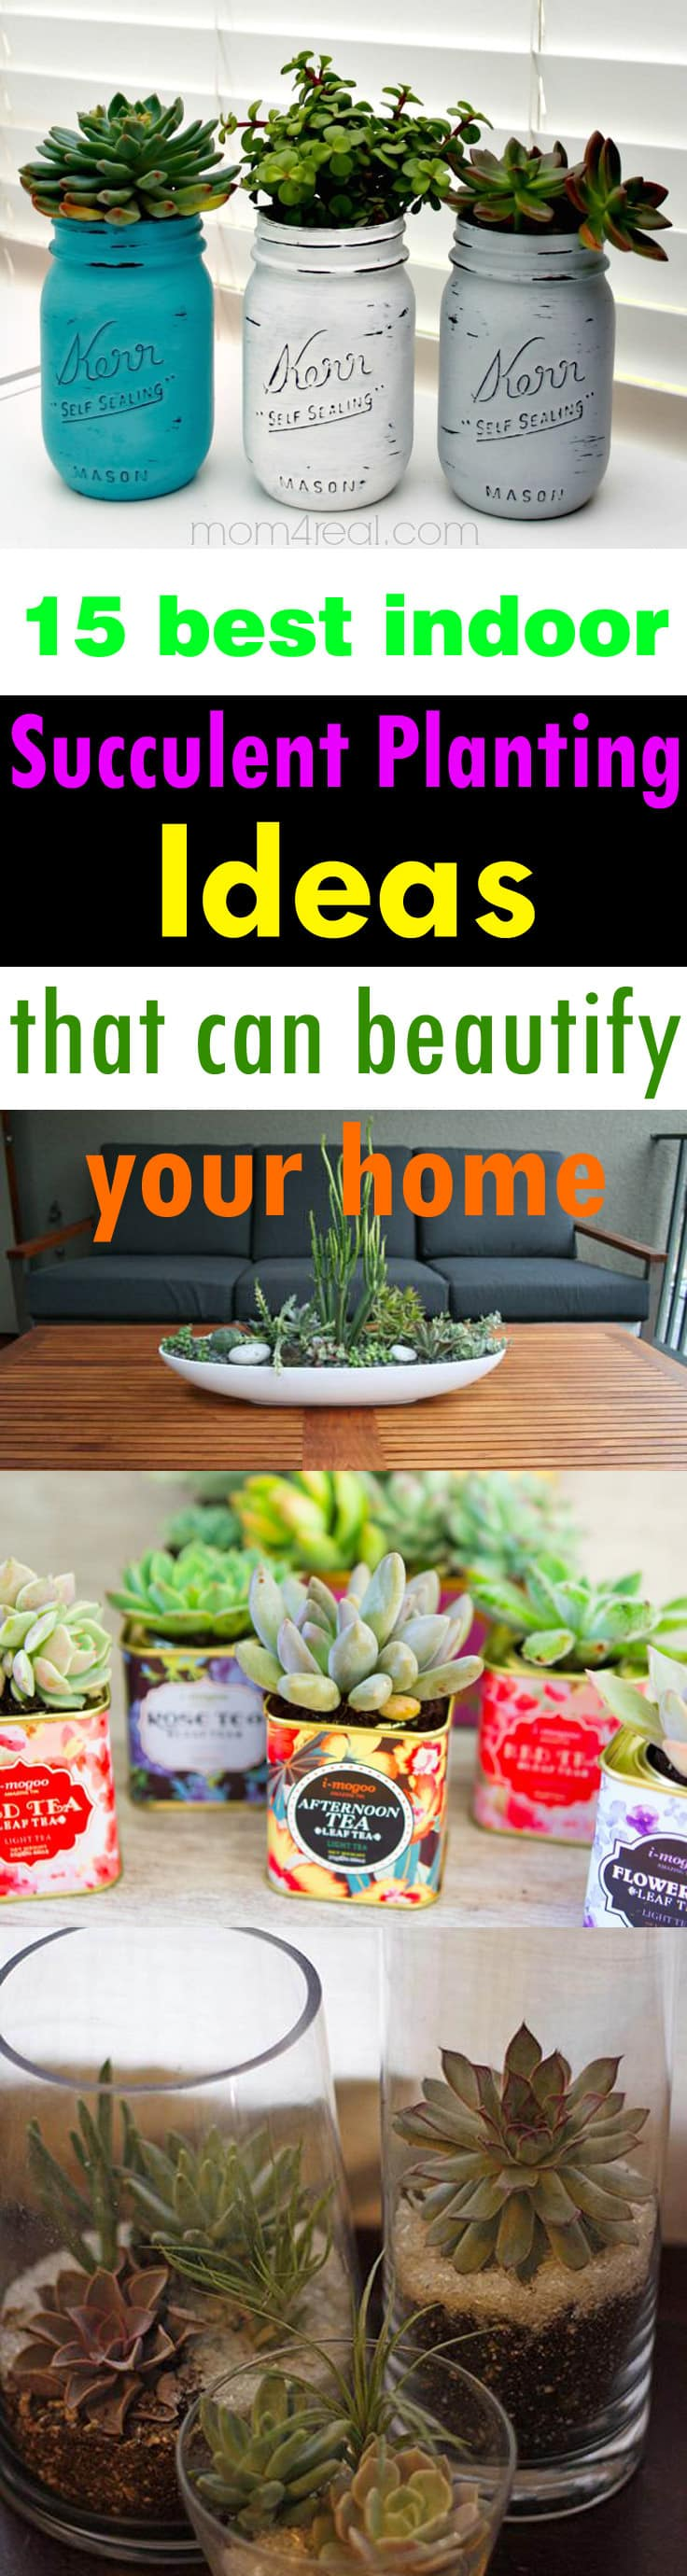 growing succulents indoors can add a touch of beauty to your home also they - Indoor Succulent Garden